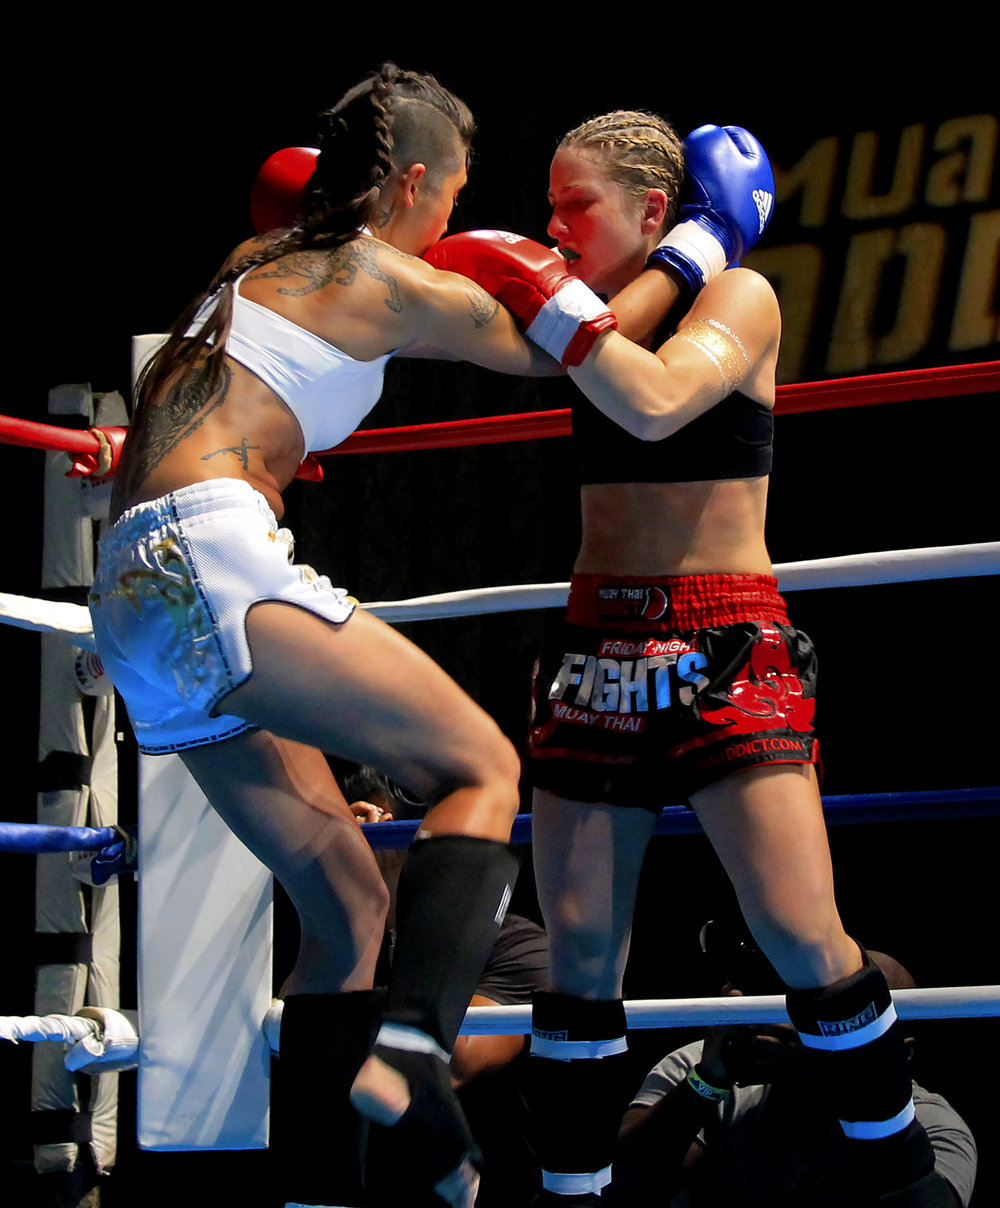 Female-fight-sports-photography-vickygood